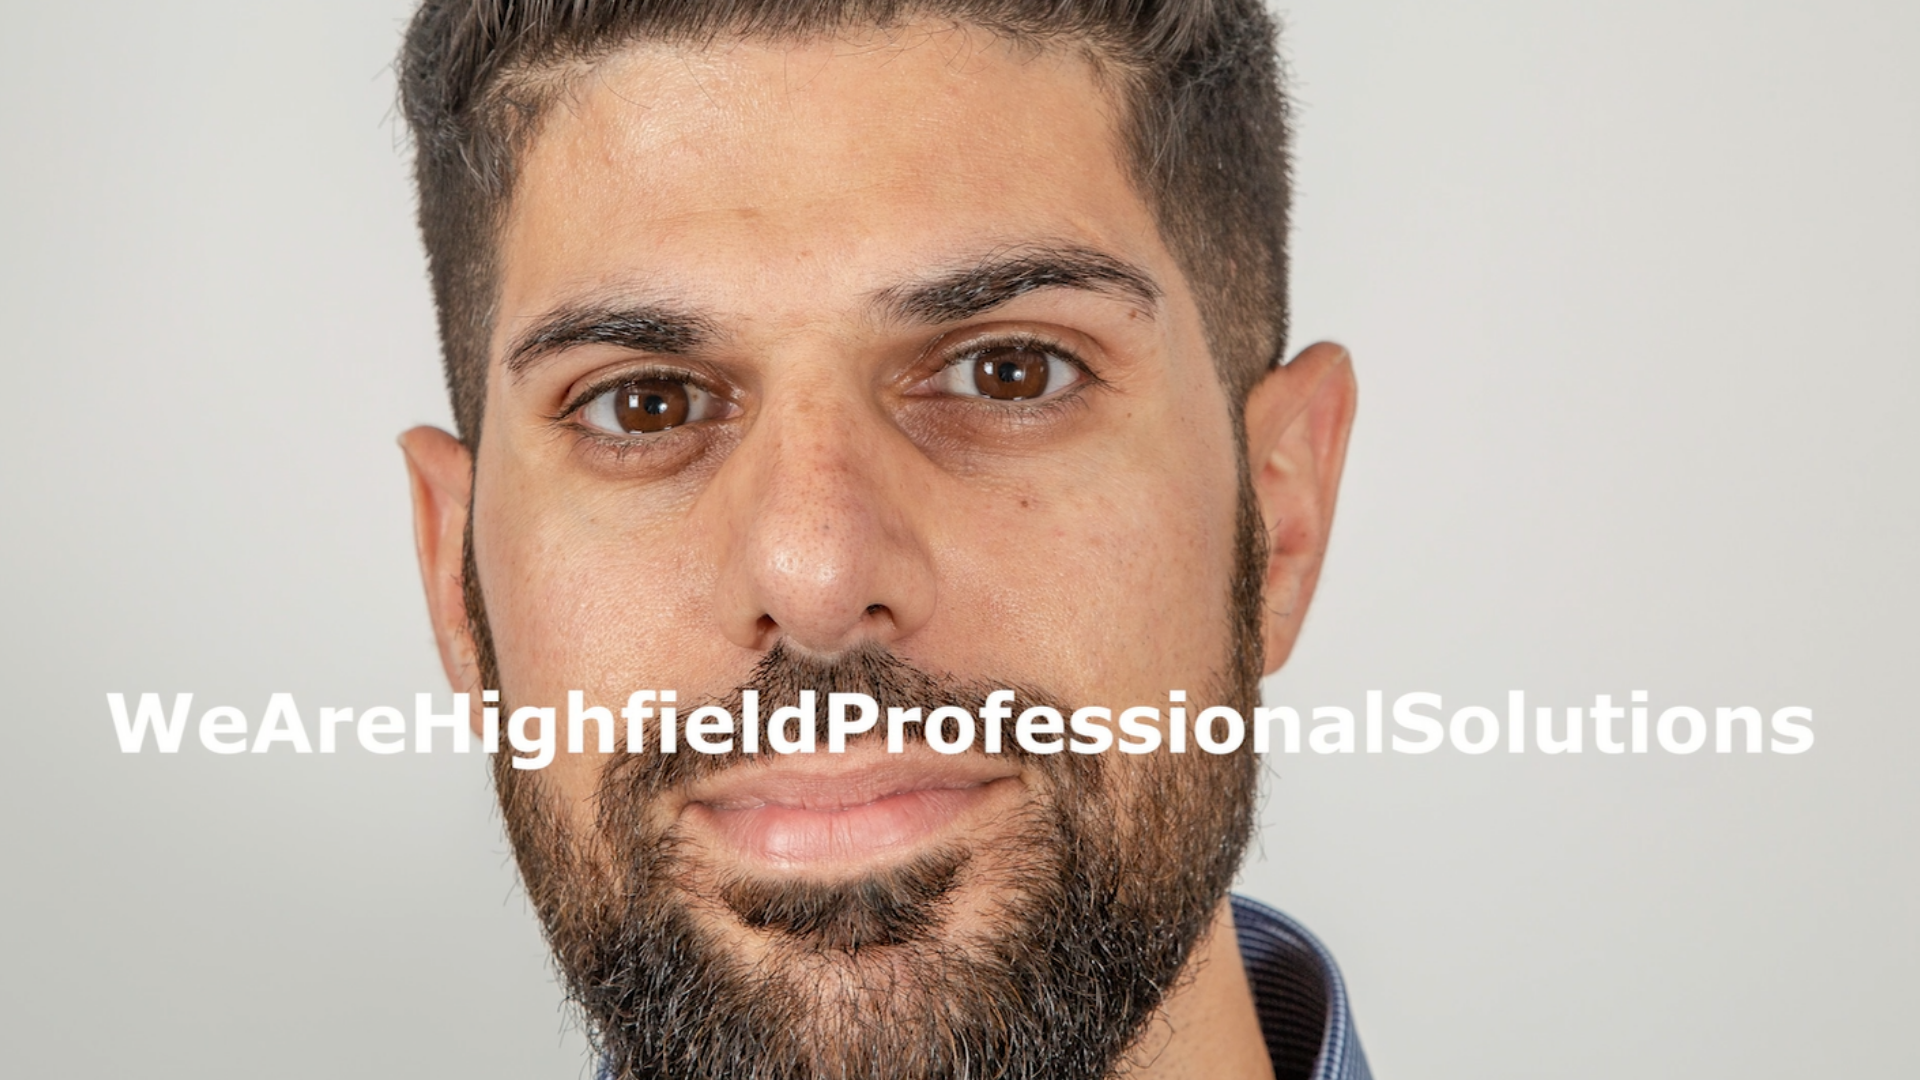 Our Future Plans for Highfield Professional Solutions